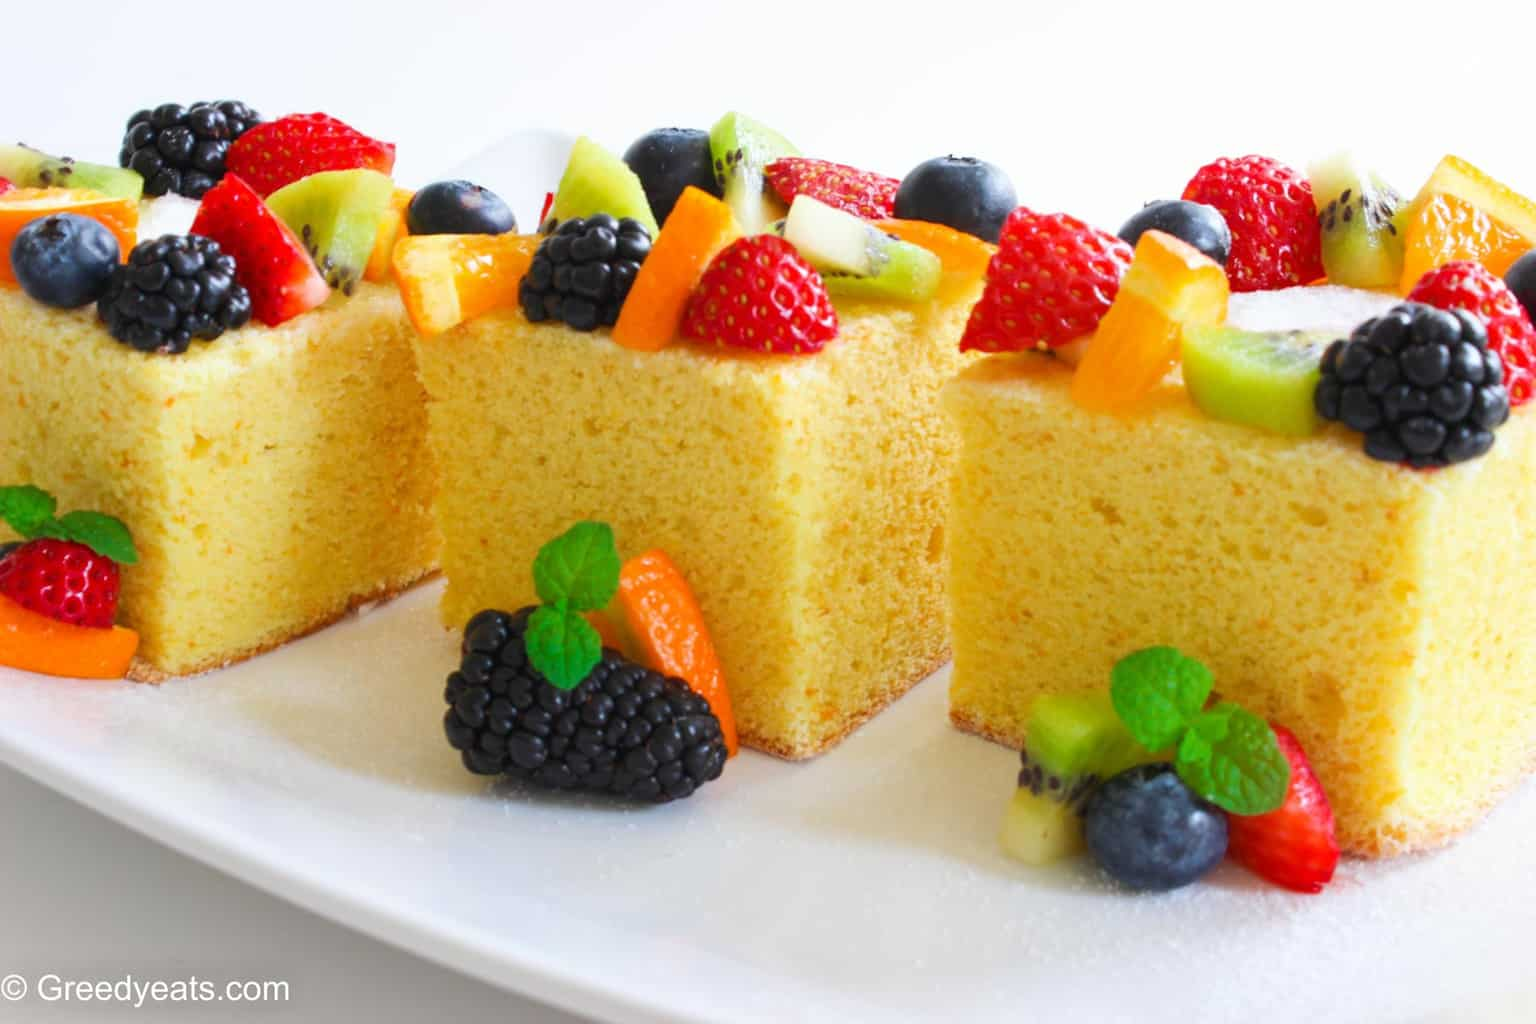 Pieces of small lemon cake that are spongy, soft and fluffy topped with fresh fruit.